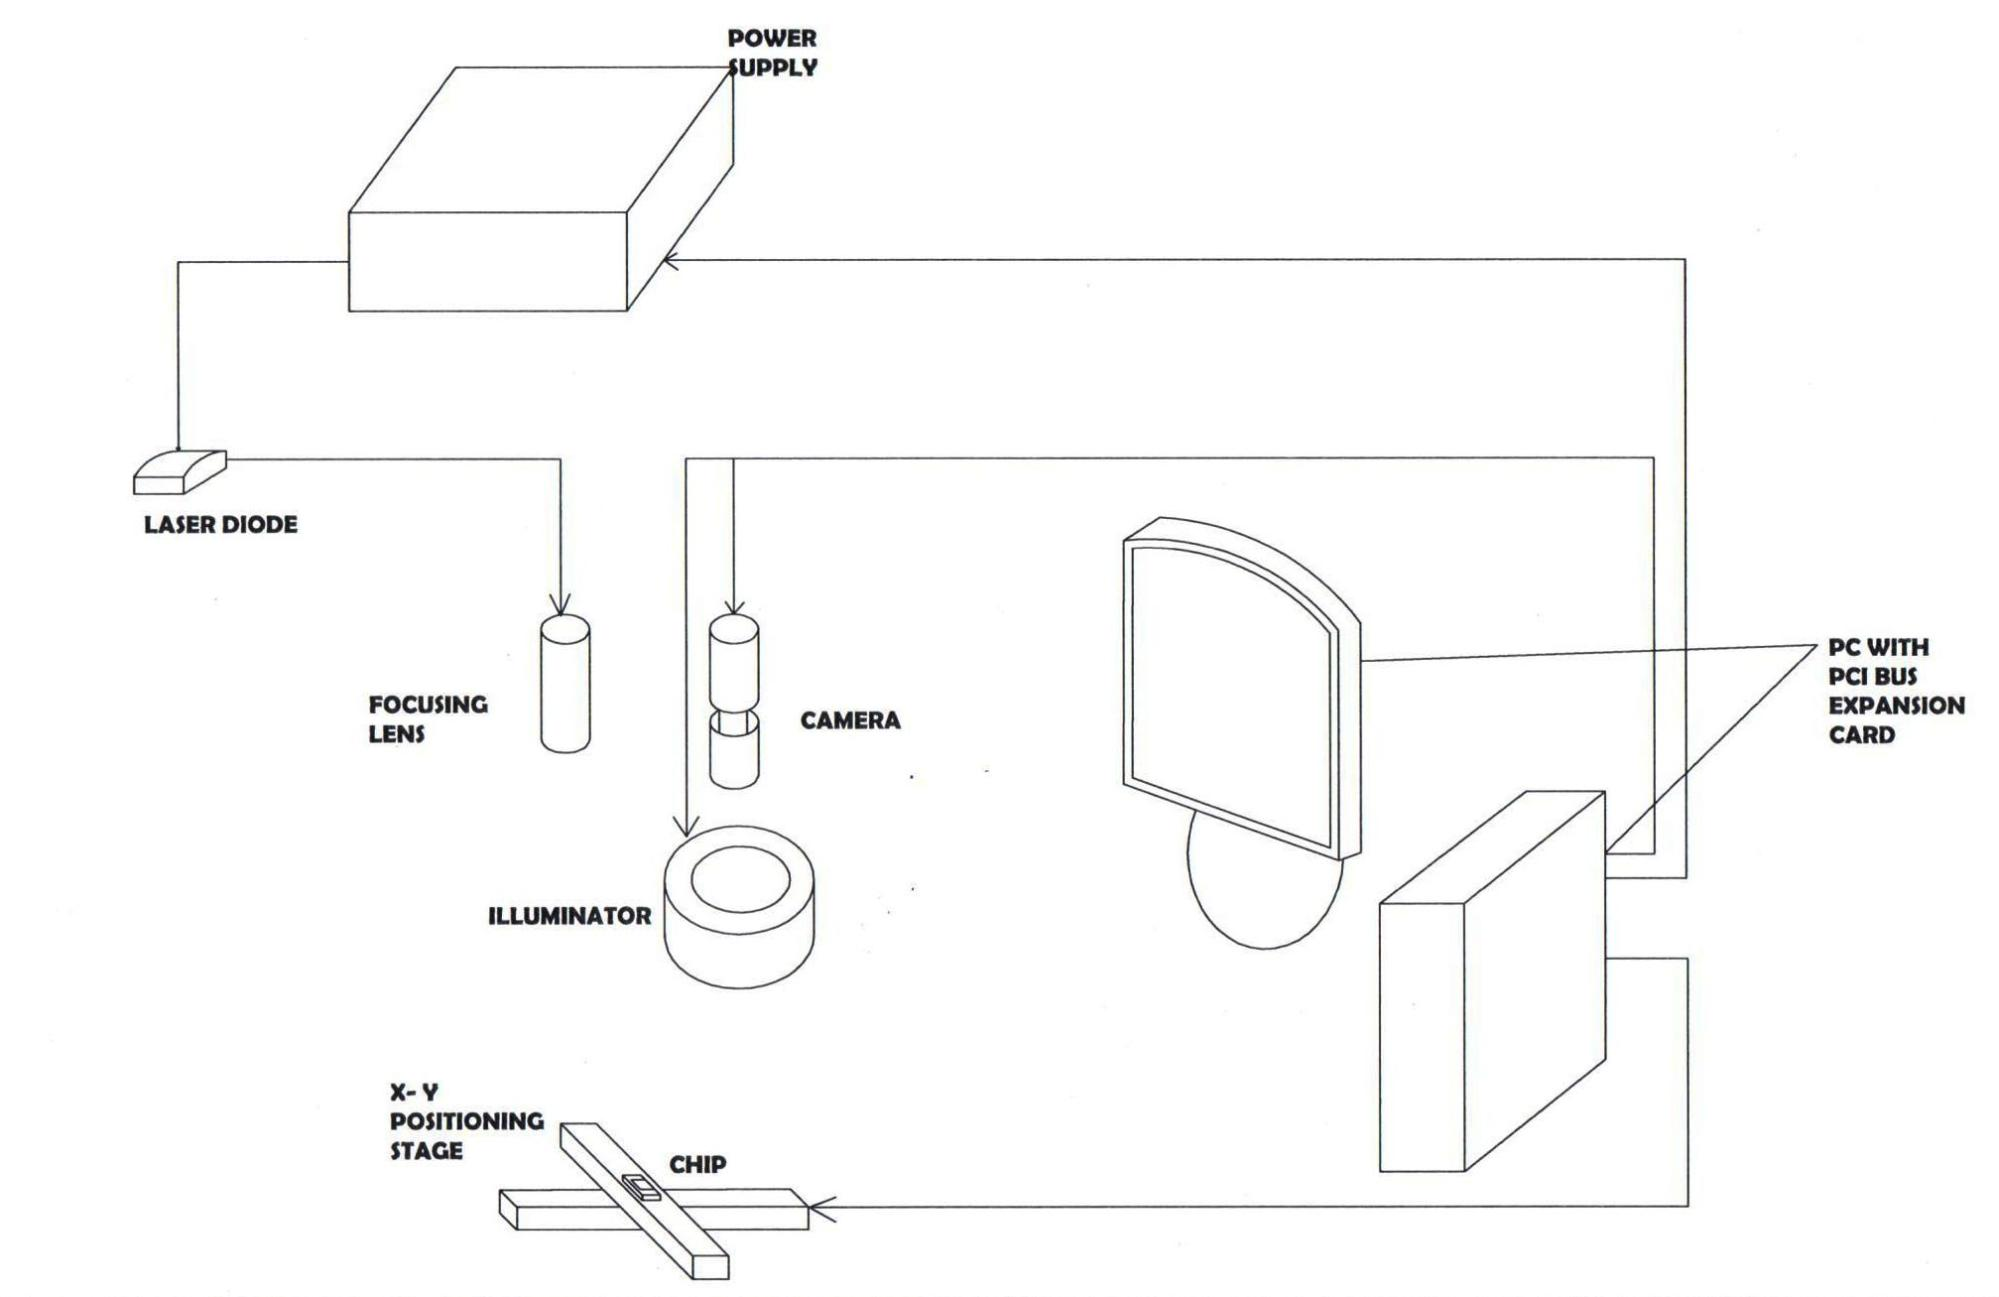 hight resolution of figure 1 the block diagram of a laser soldering system